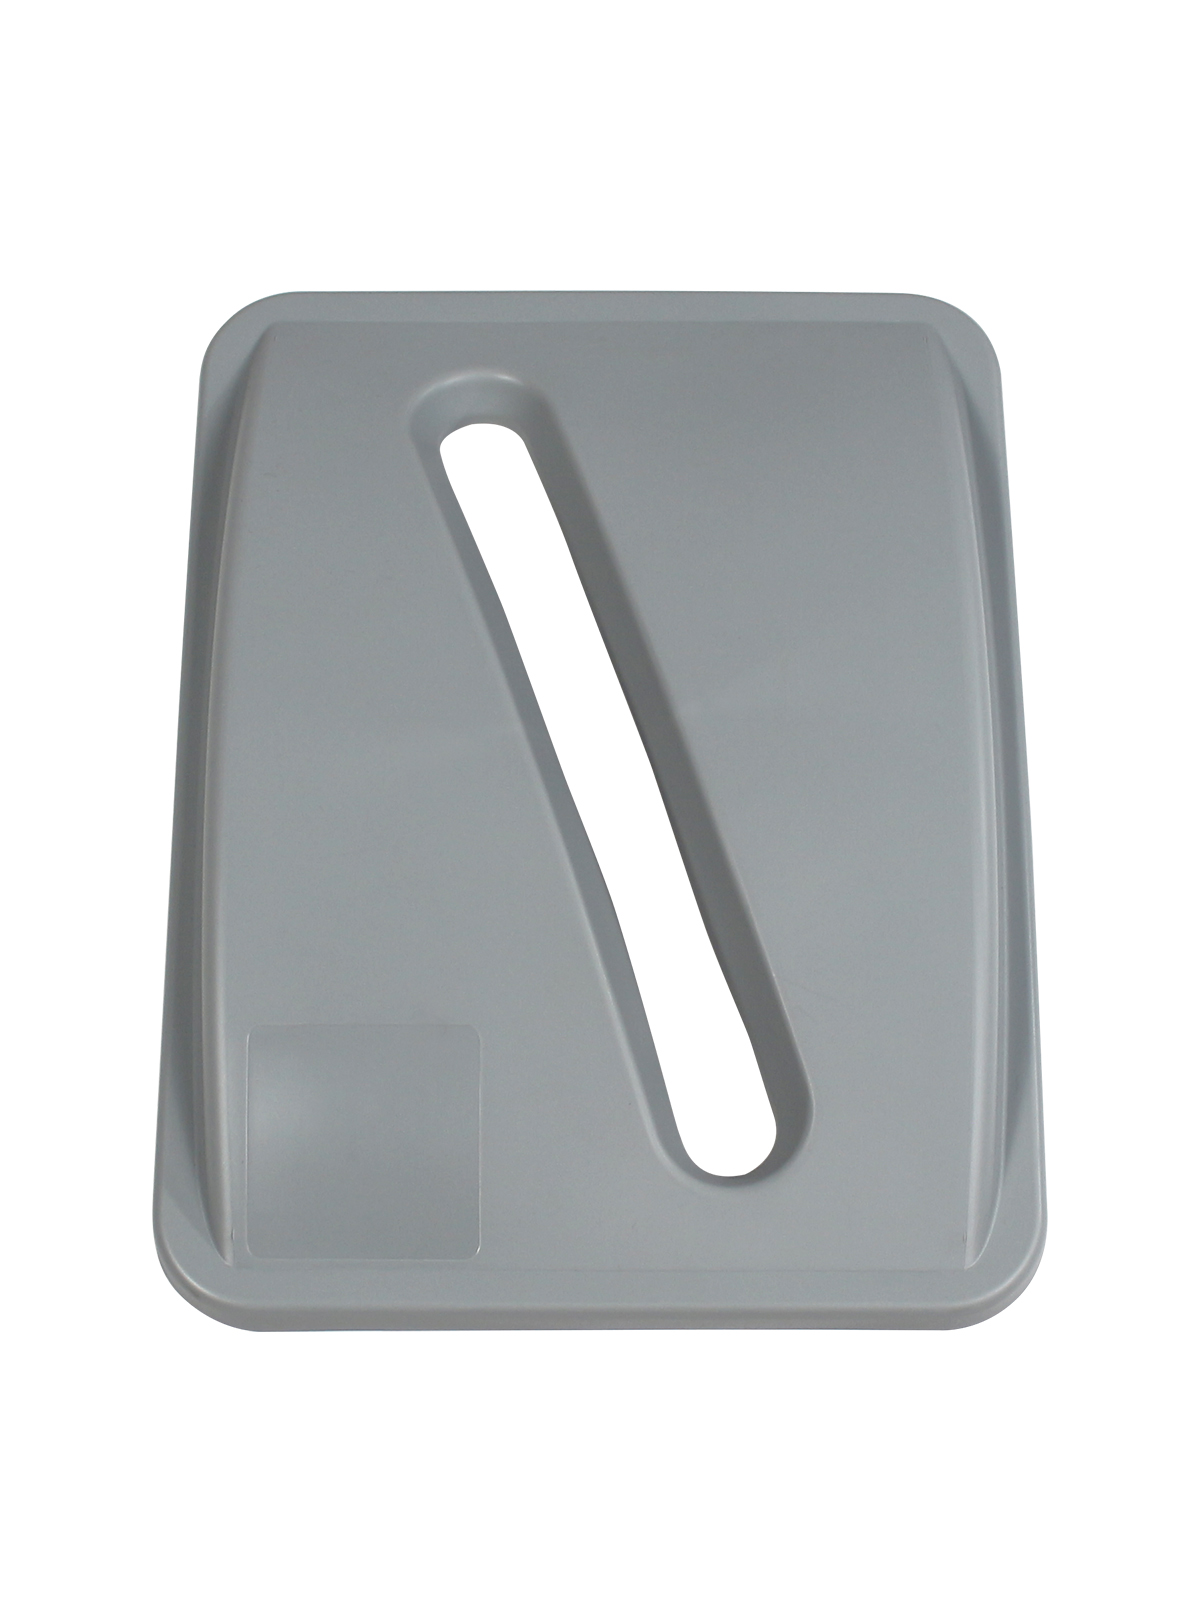 WASTE WATCHER XL - Single - Lid - Slot - Executive Grey